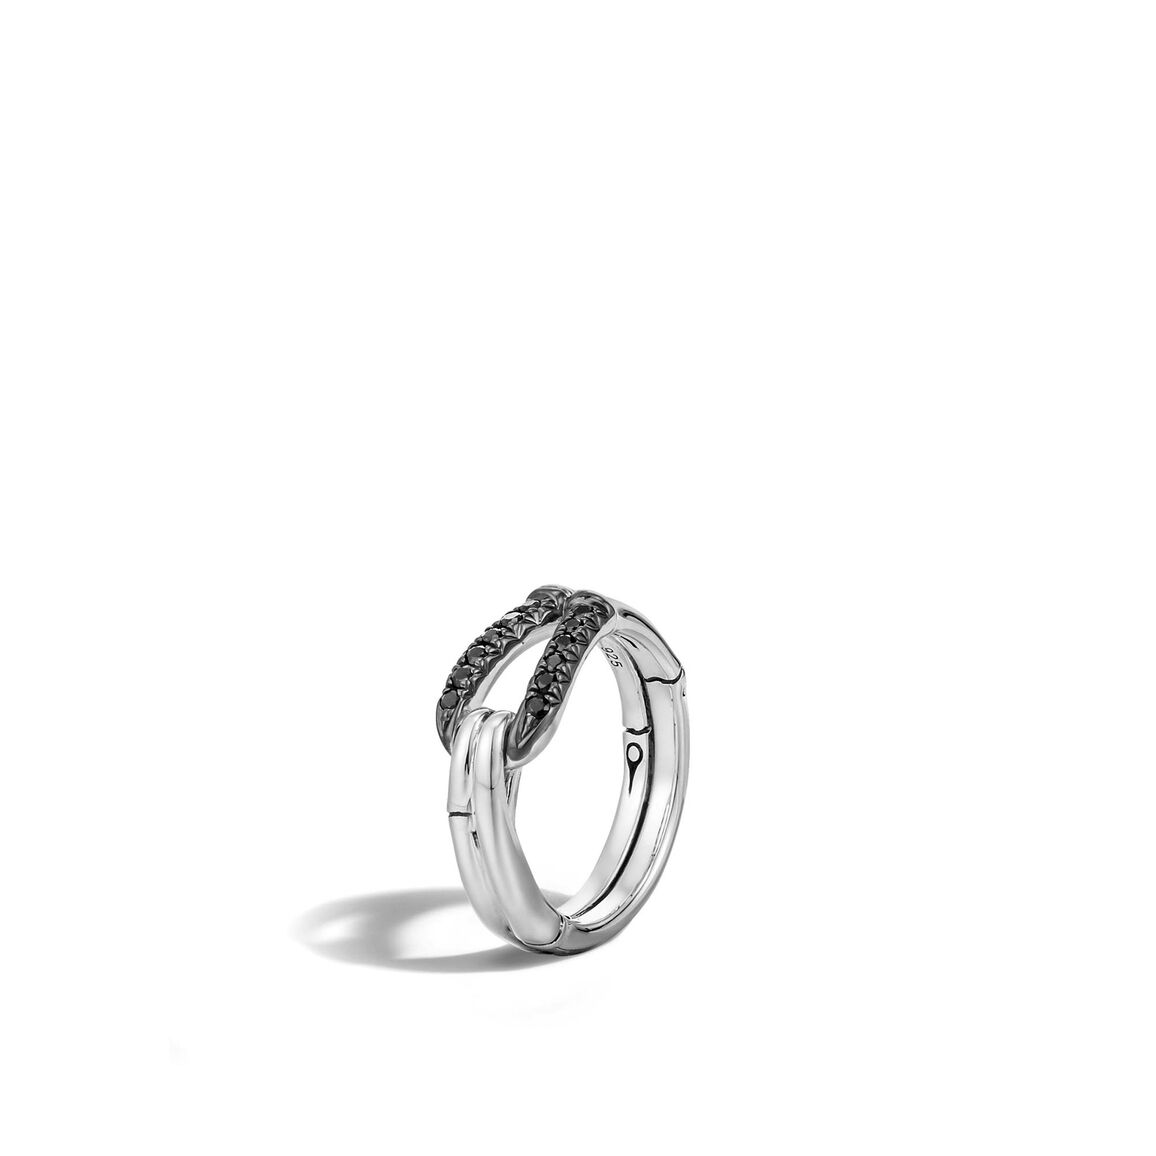 Bamboo Ring in Silver with Gemstone